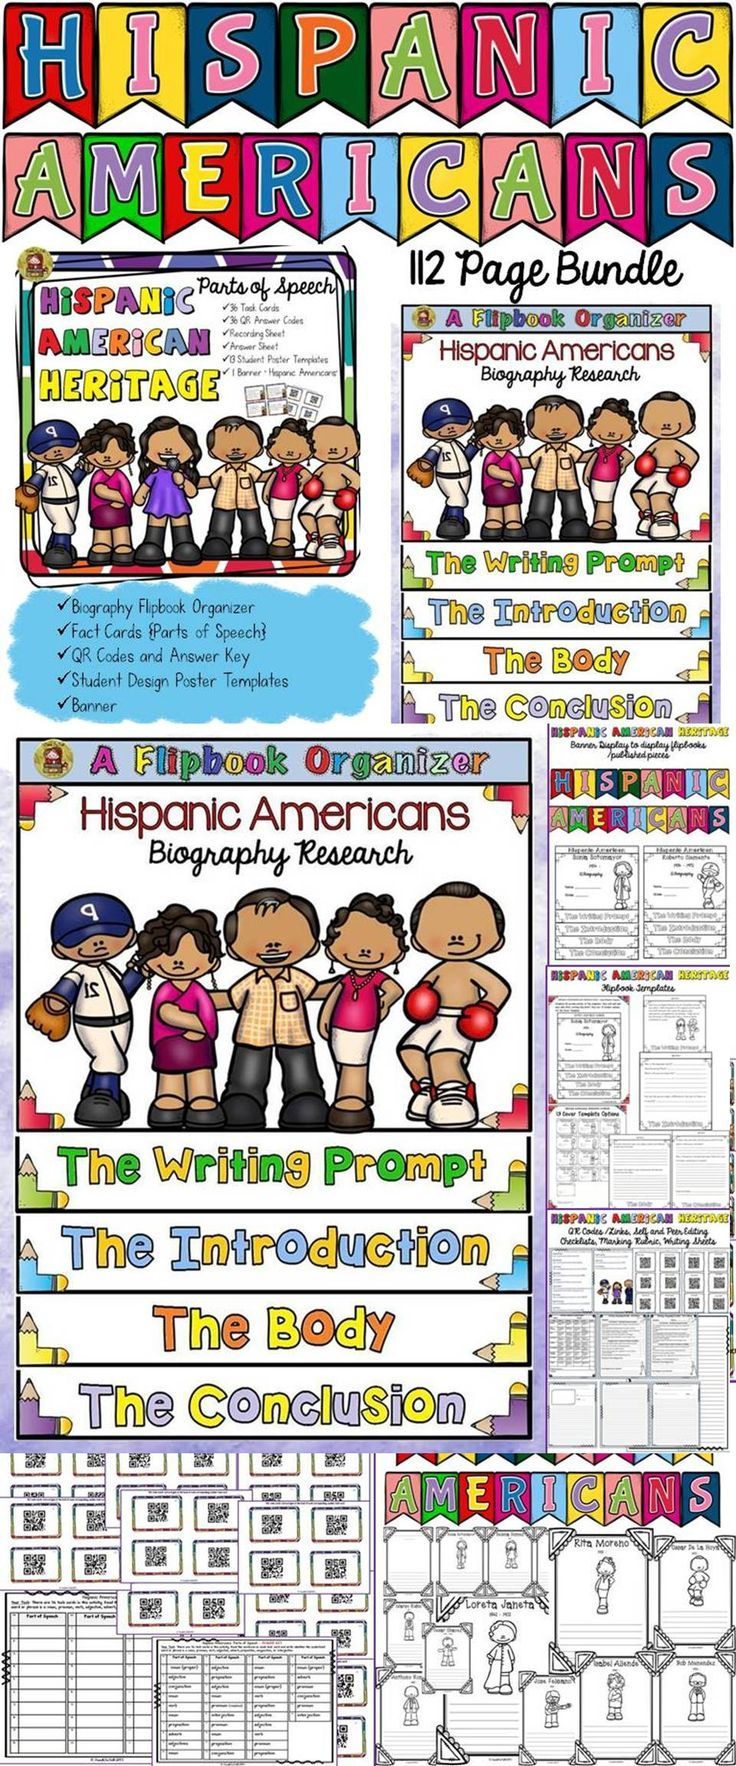 Make learning about Hispanic Americans fun and interesting with this 112 page bundle that celebrates Hispanic Heritage Month. Students will research and write biographies on famous Hispanic Americans and learn interesting facts integrating grammar and history using the 36 parts of speech fact cards. https://www.teacherspayteachers.com/Product/HISPANIC-HERITAGE-MONTH-BUNDLEBIOGRAPHY-FACT-CARDS-QR-CODES-POSTERS-BANNER-2122612